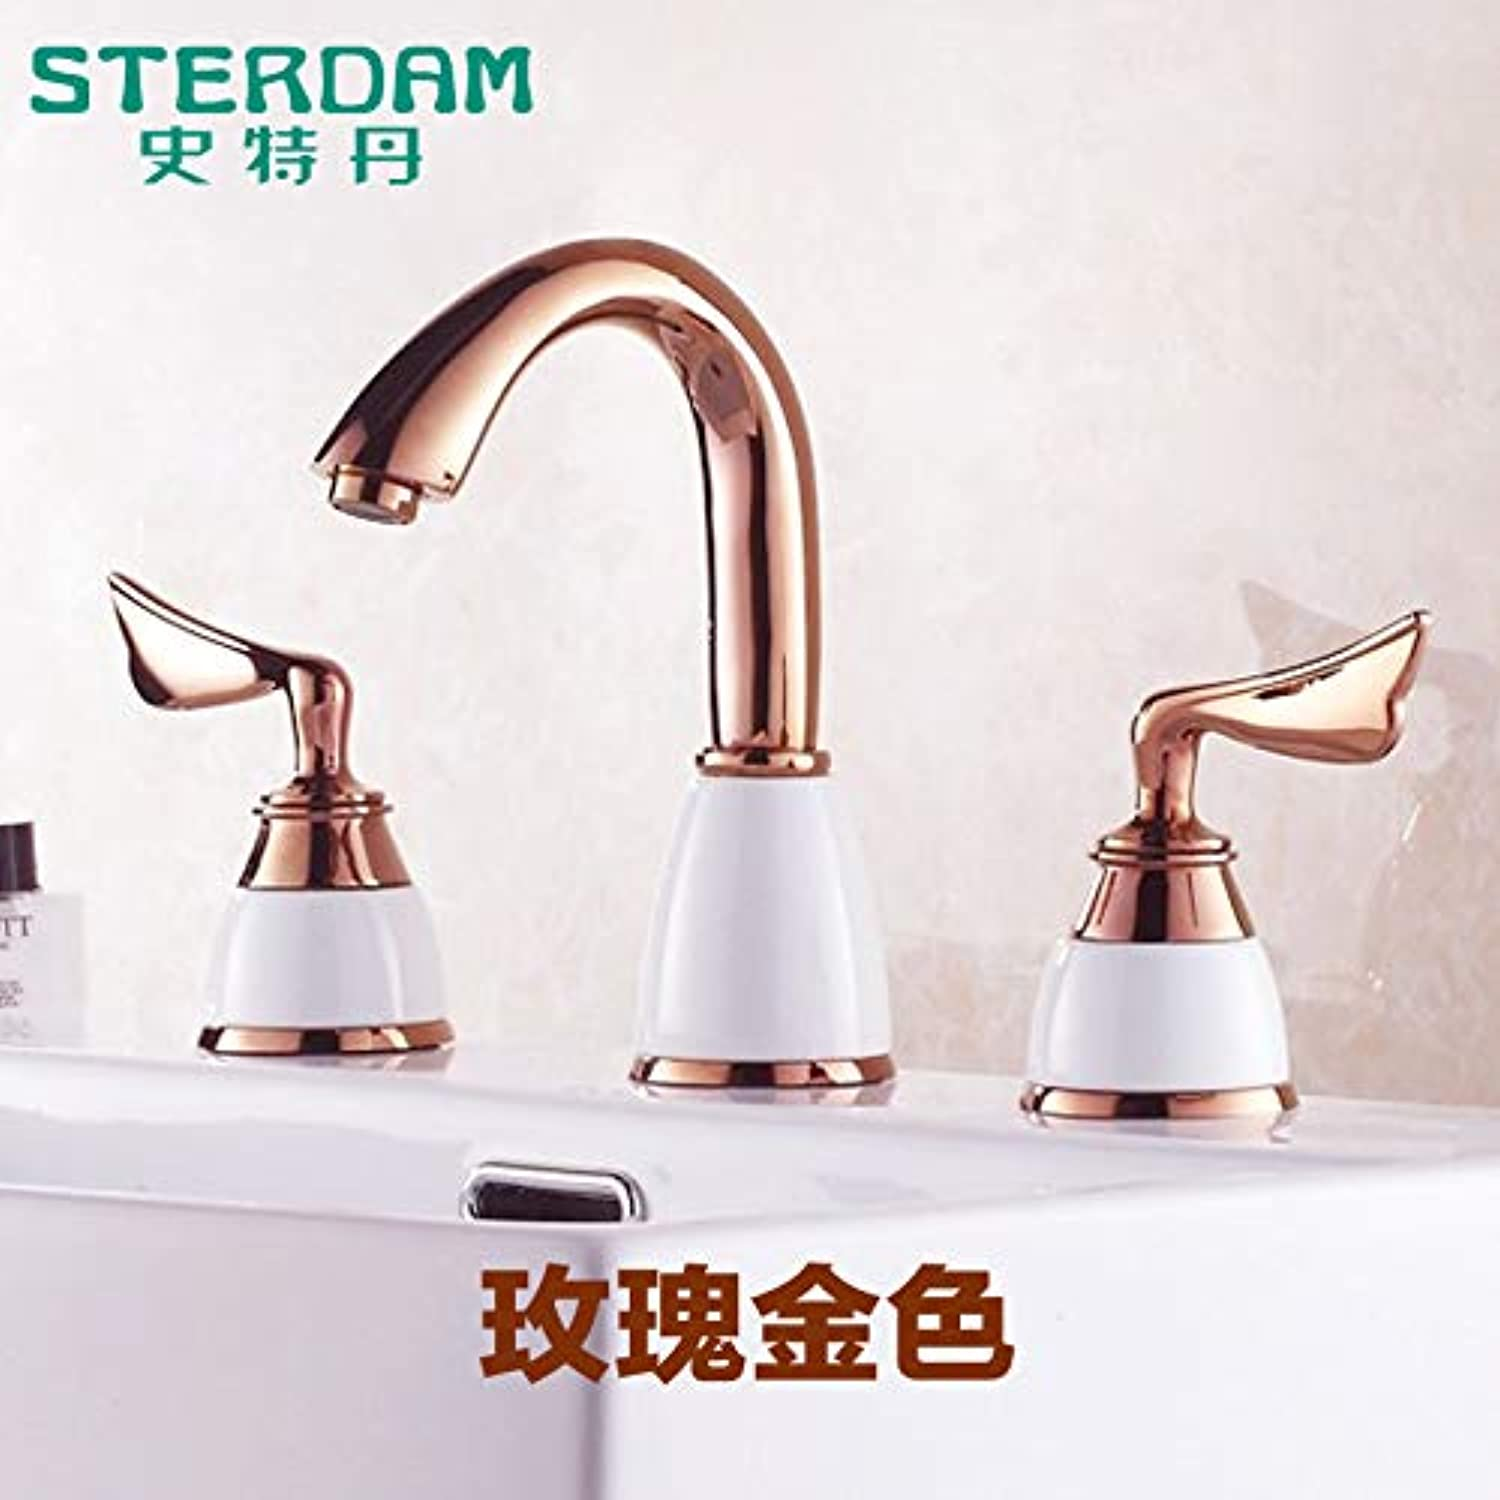 LHbox Basin Mixer Tap Bathroom Sink Faucet Antique Continental gold 3 holes 3 holes basin mixer a decent full copper hot and cold 8-inch lowered basin faucet, pink gold